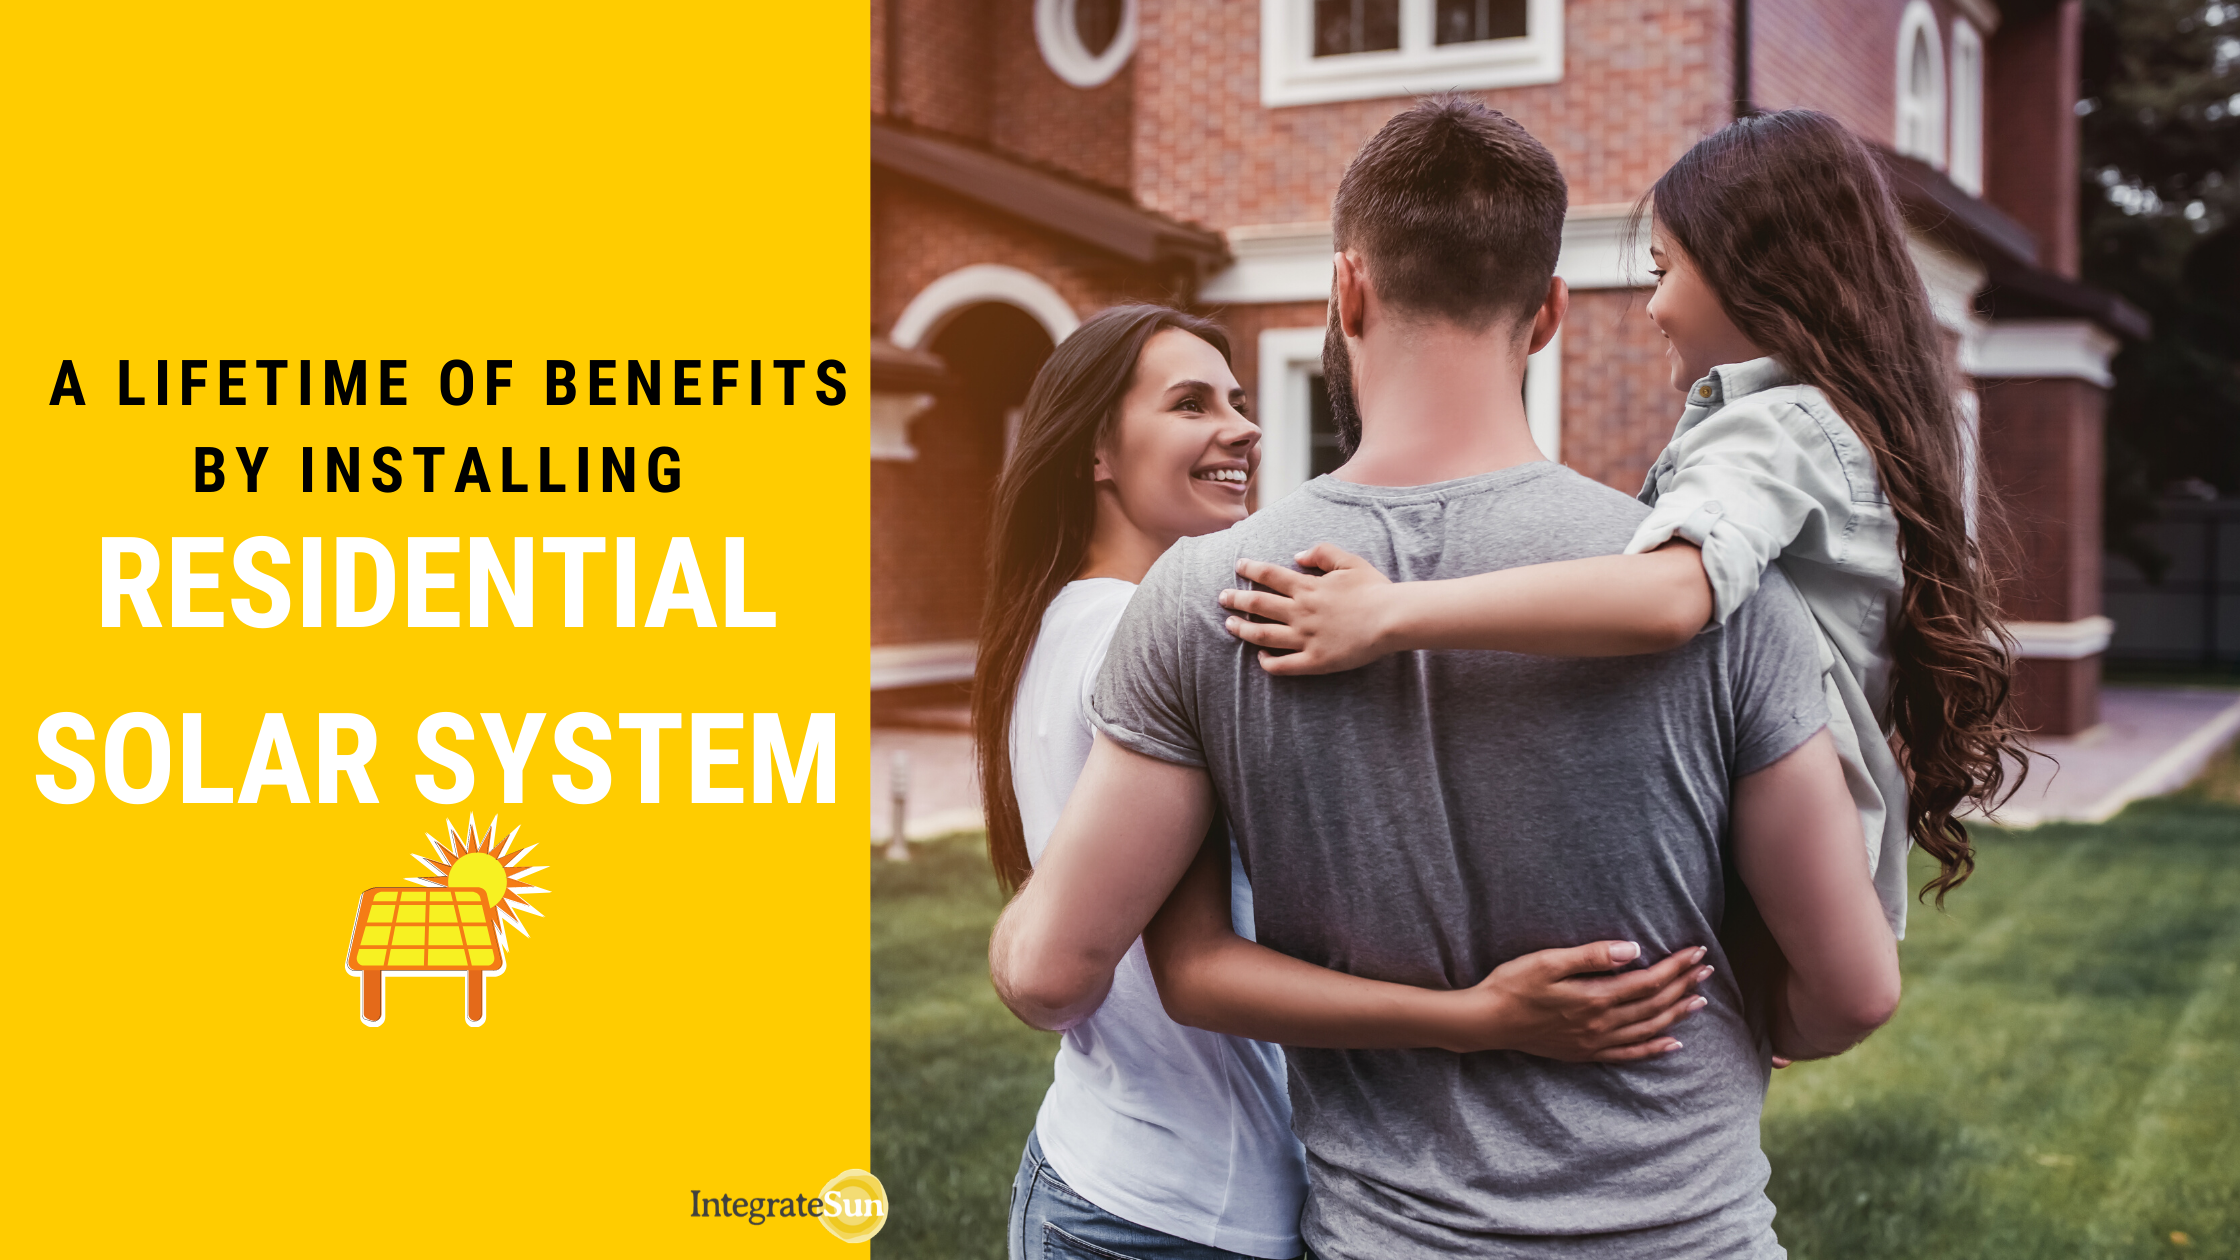 Discover 4 reasons residential solar system benefits you for a lifetime. Integratesun.